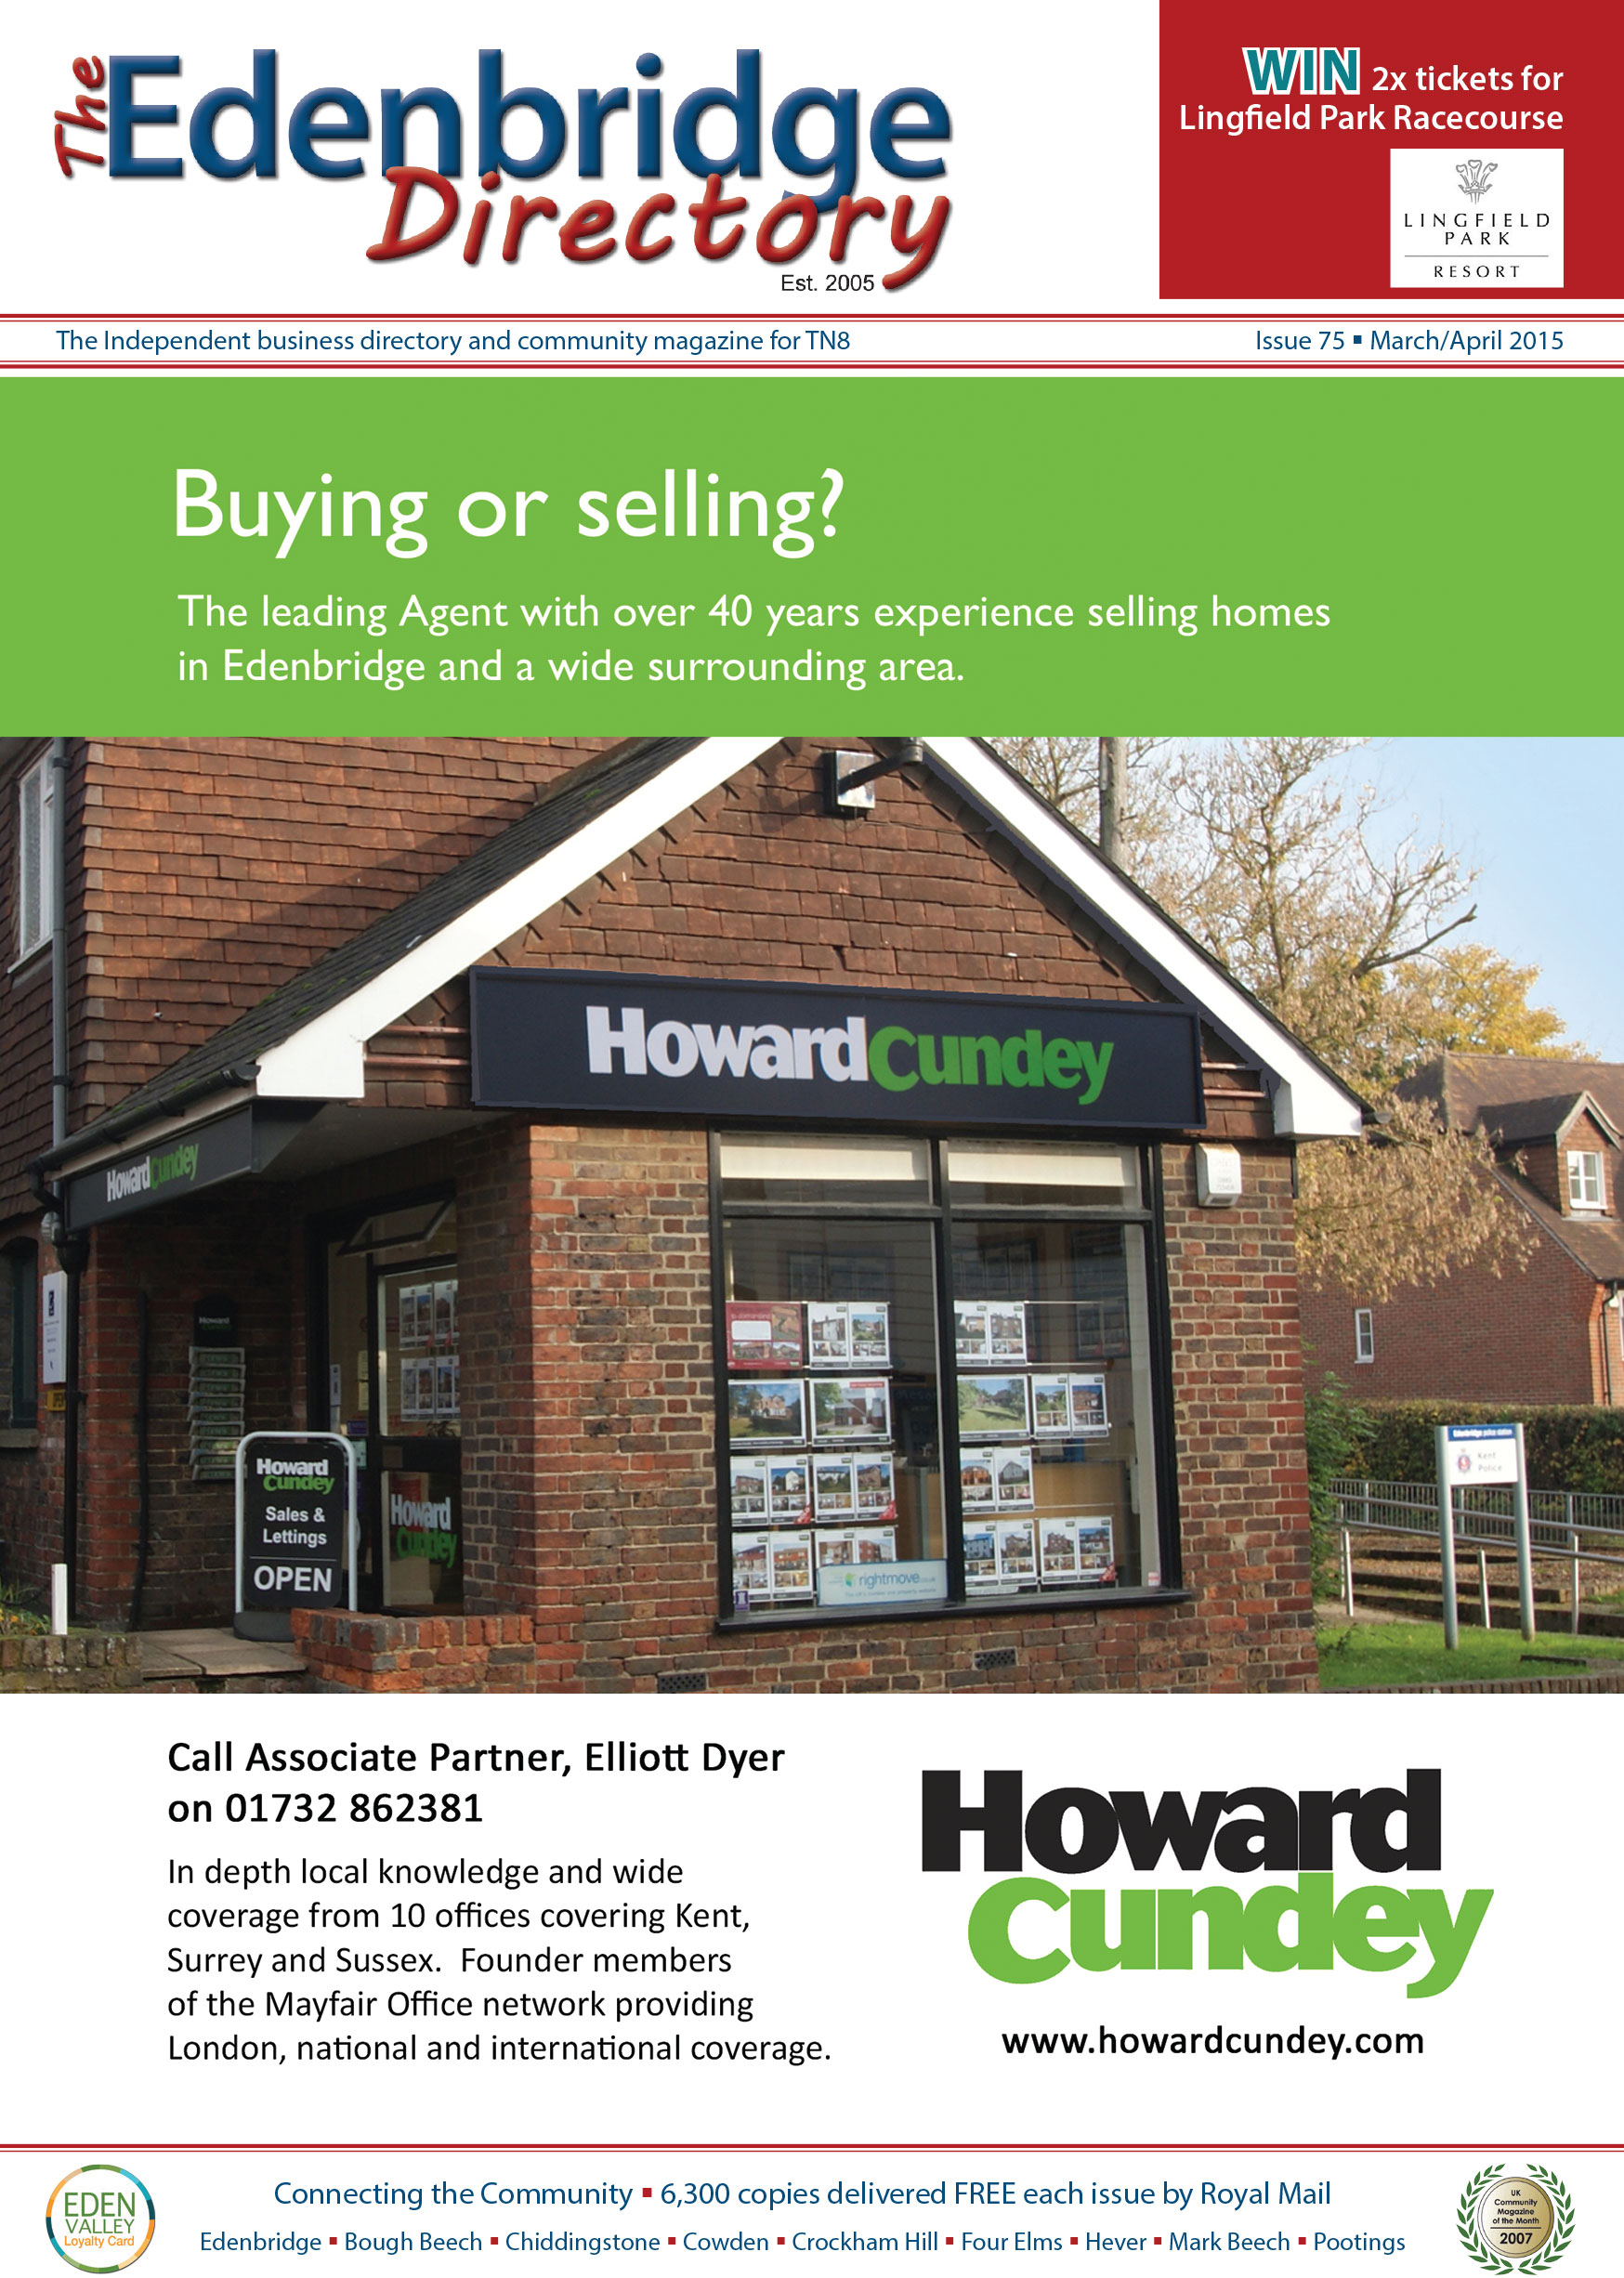 The Edenbridge Directory – Issue 75 – March/April 2015